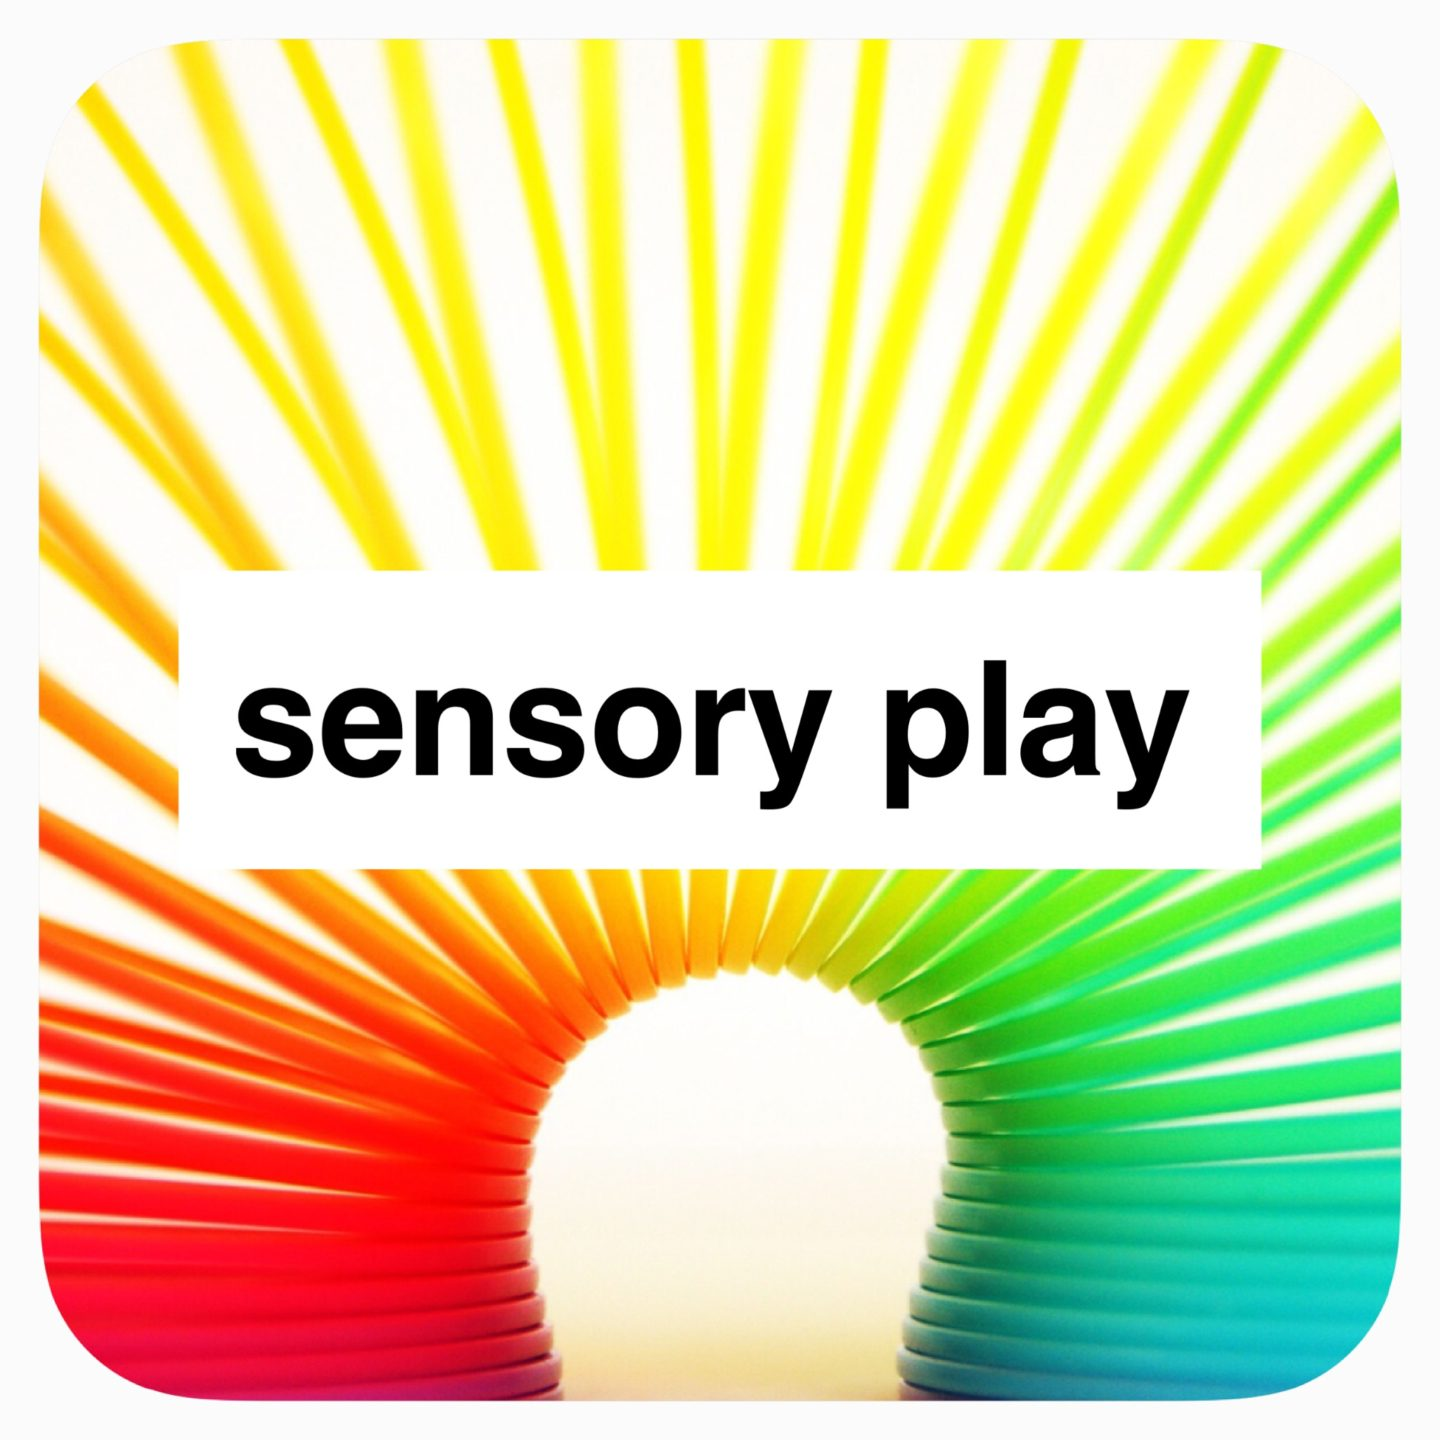 Sensory Play ideas from @how2playtoday